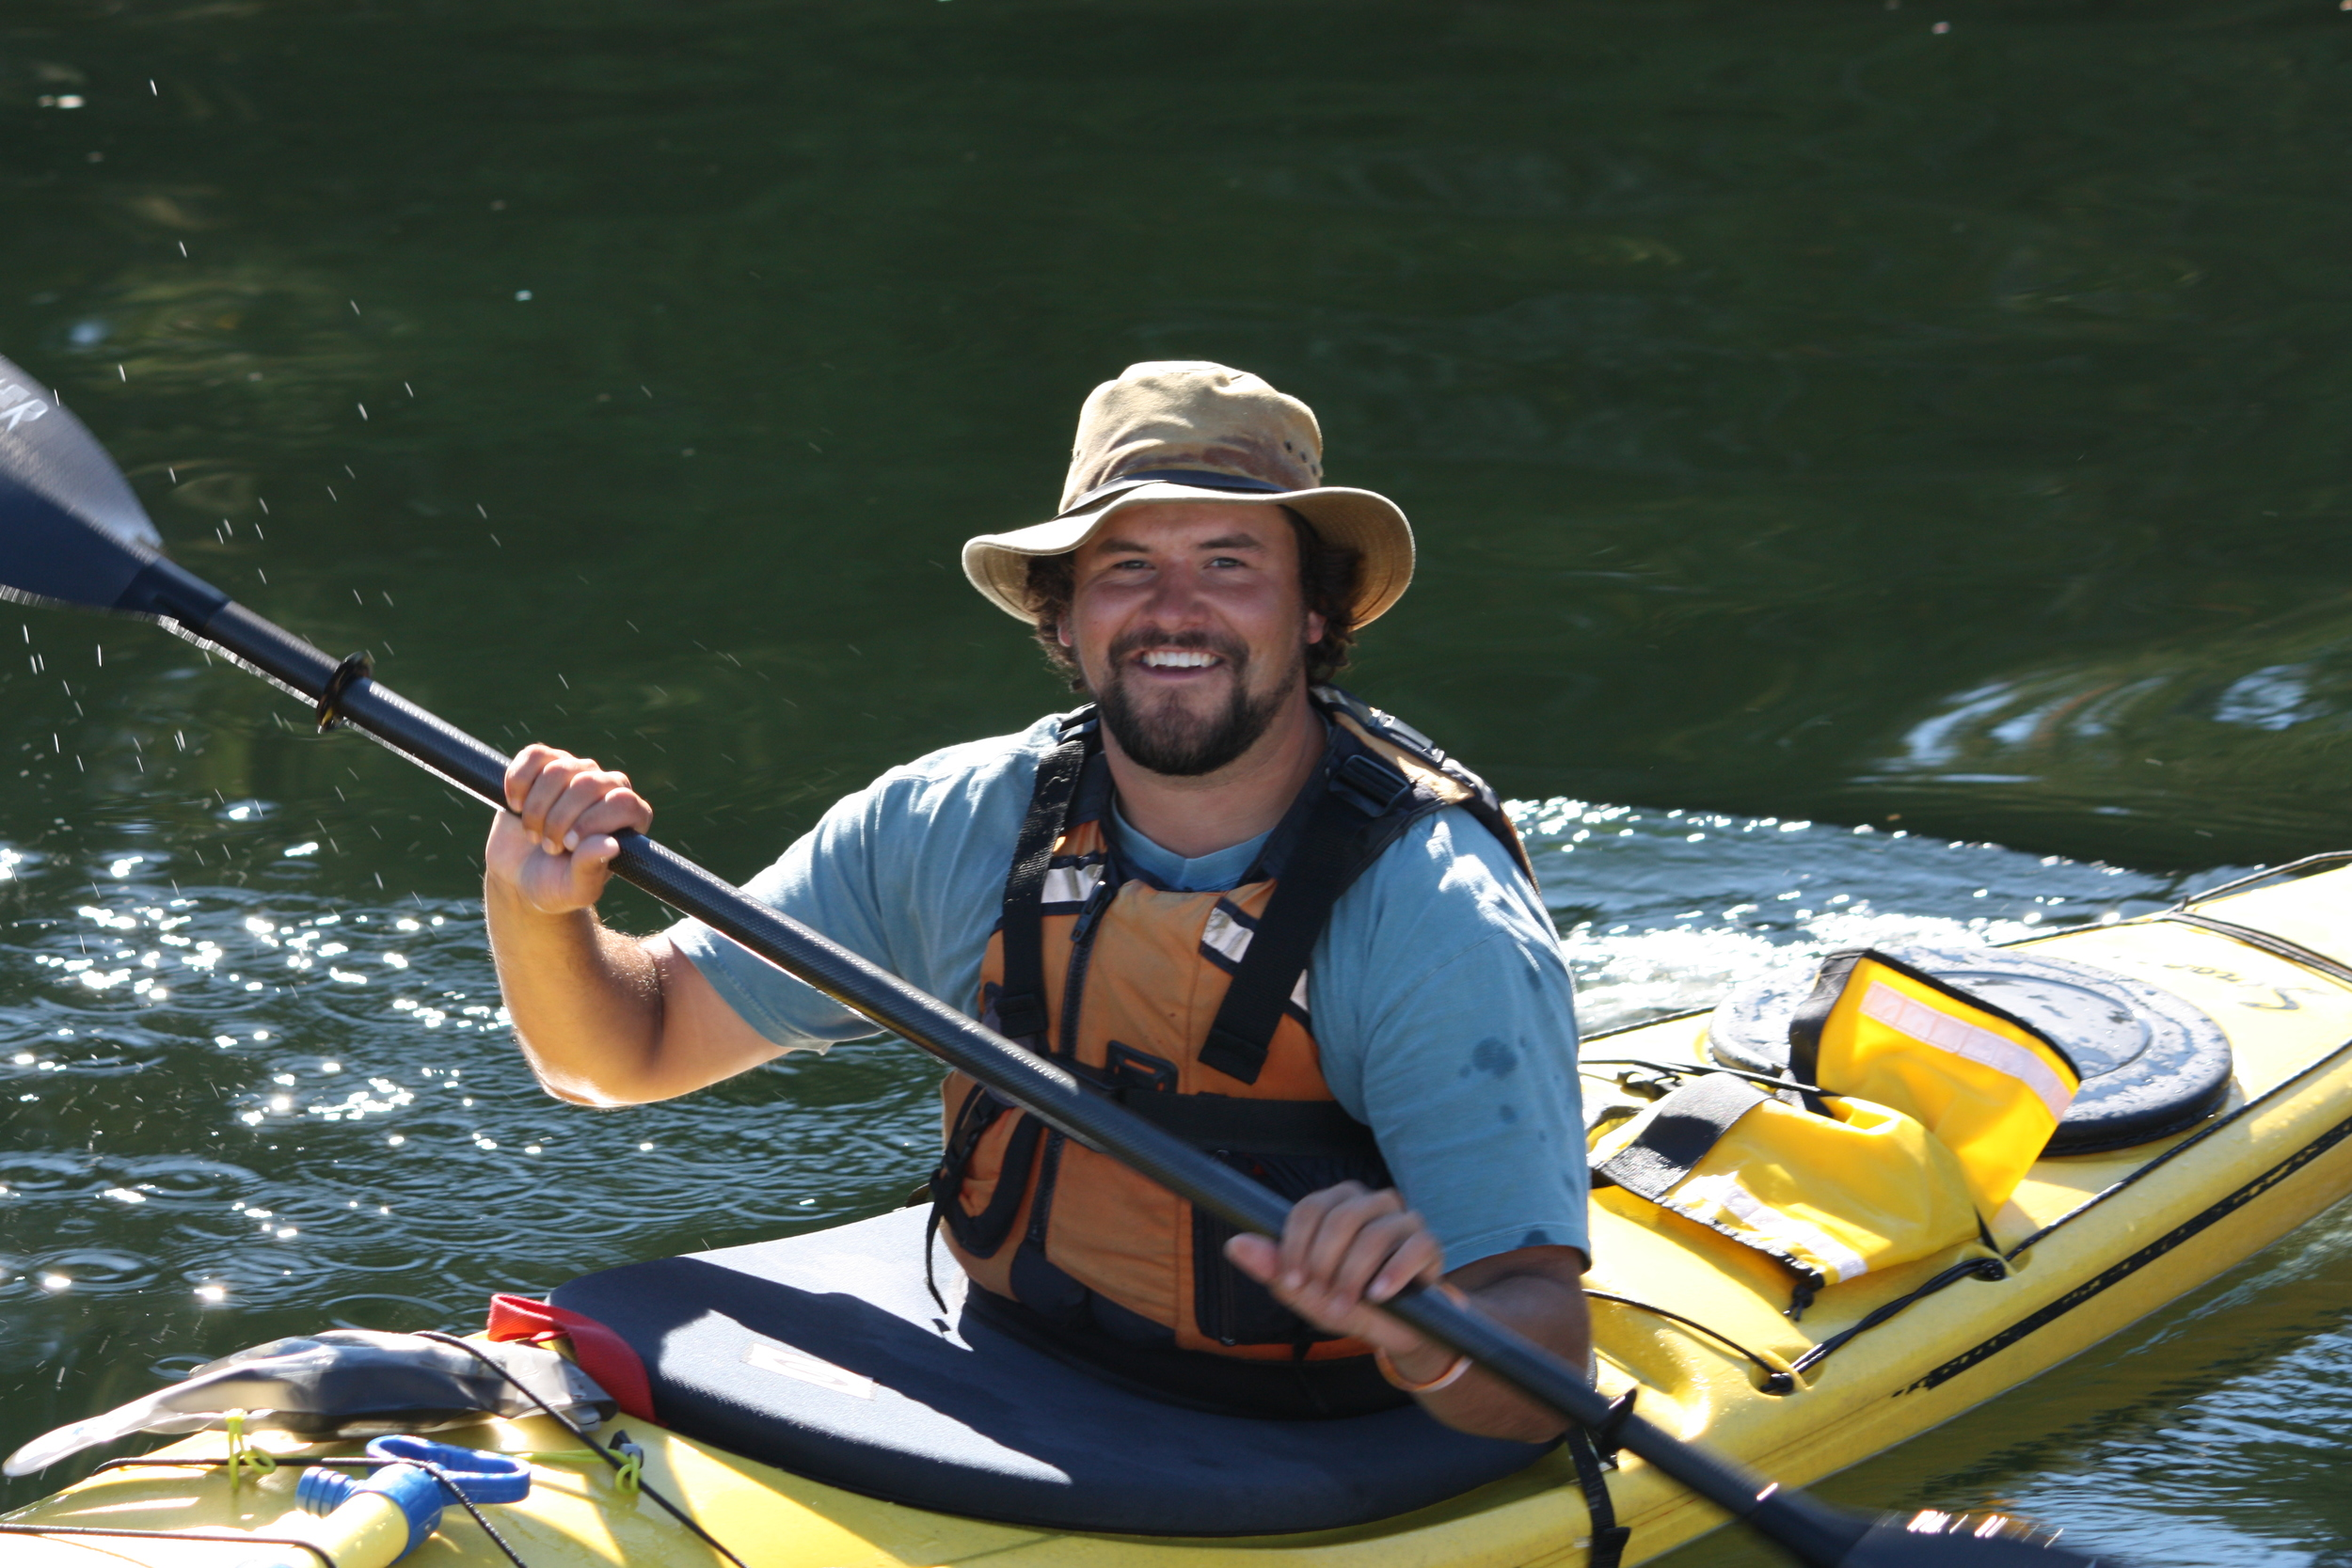 One of our all-time top rated guides, James White, is back this summer for his fifth year of paddling at Orcas Cove for Southeast Sea Kayaks.